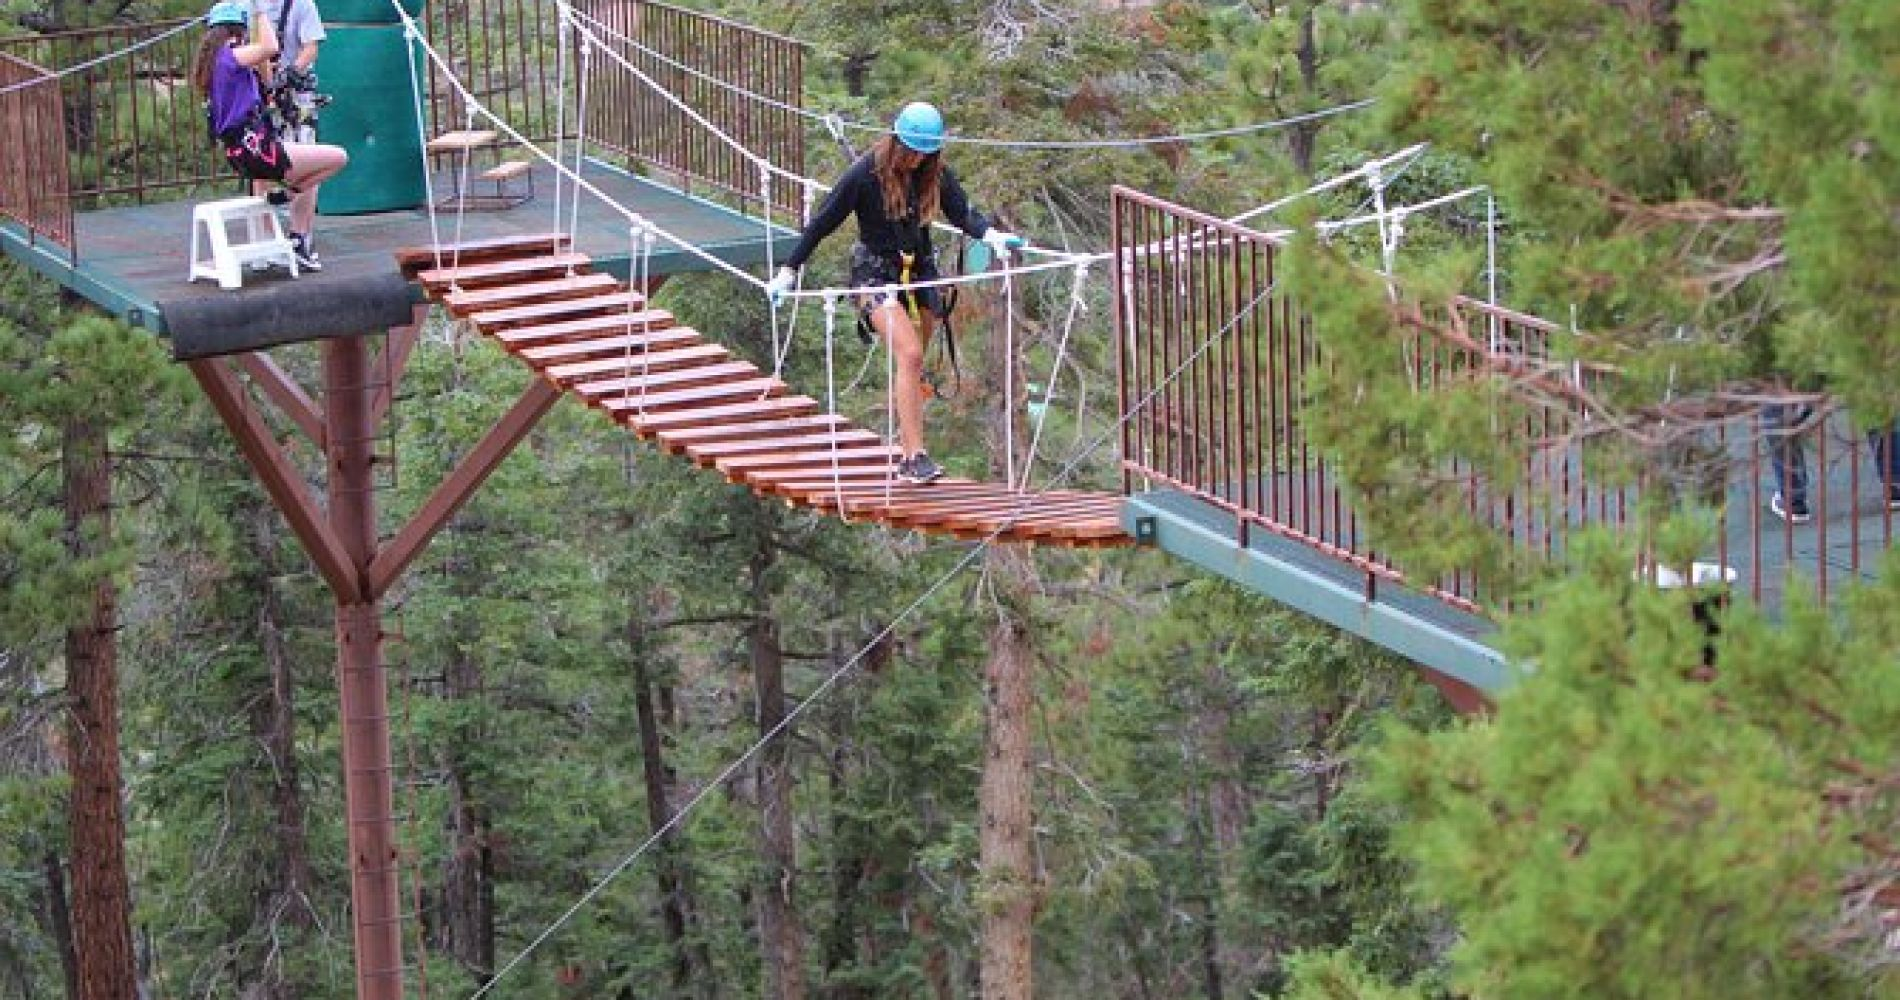 Zipline Tour - 9 high-speed ziplines & fun suspension bridge